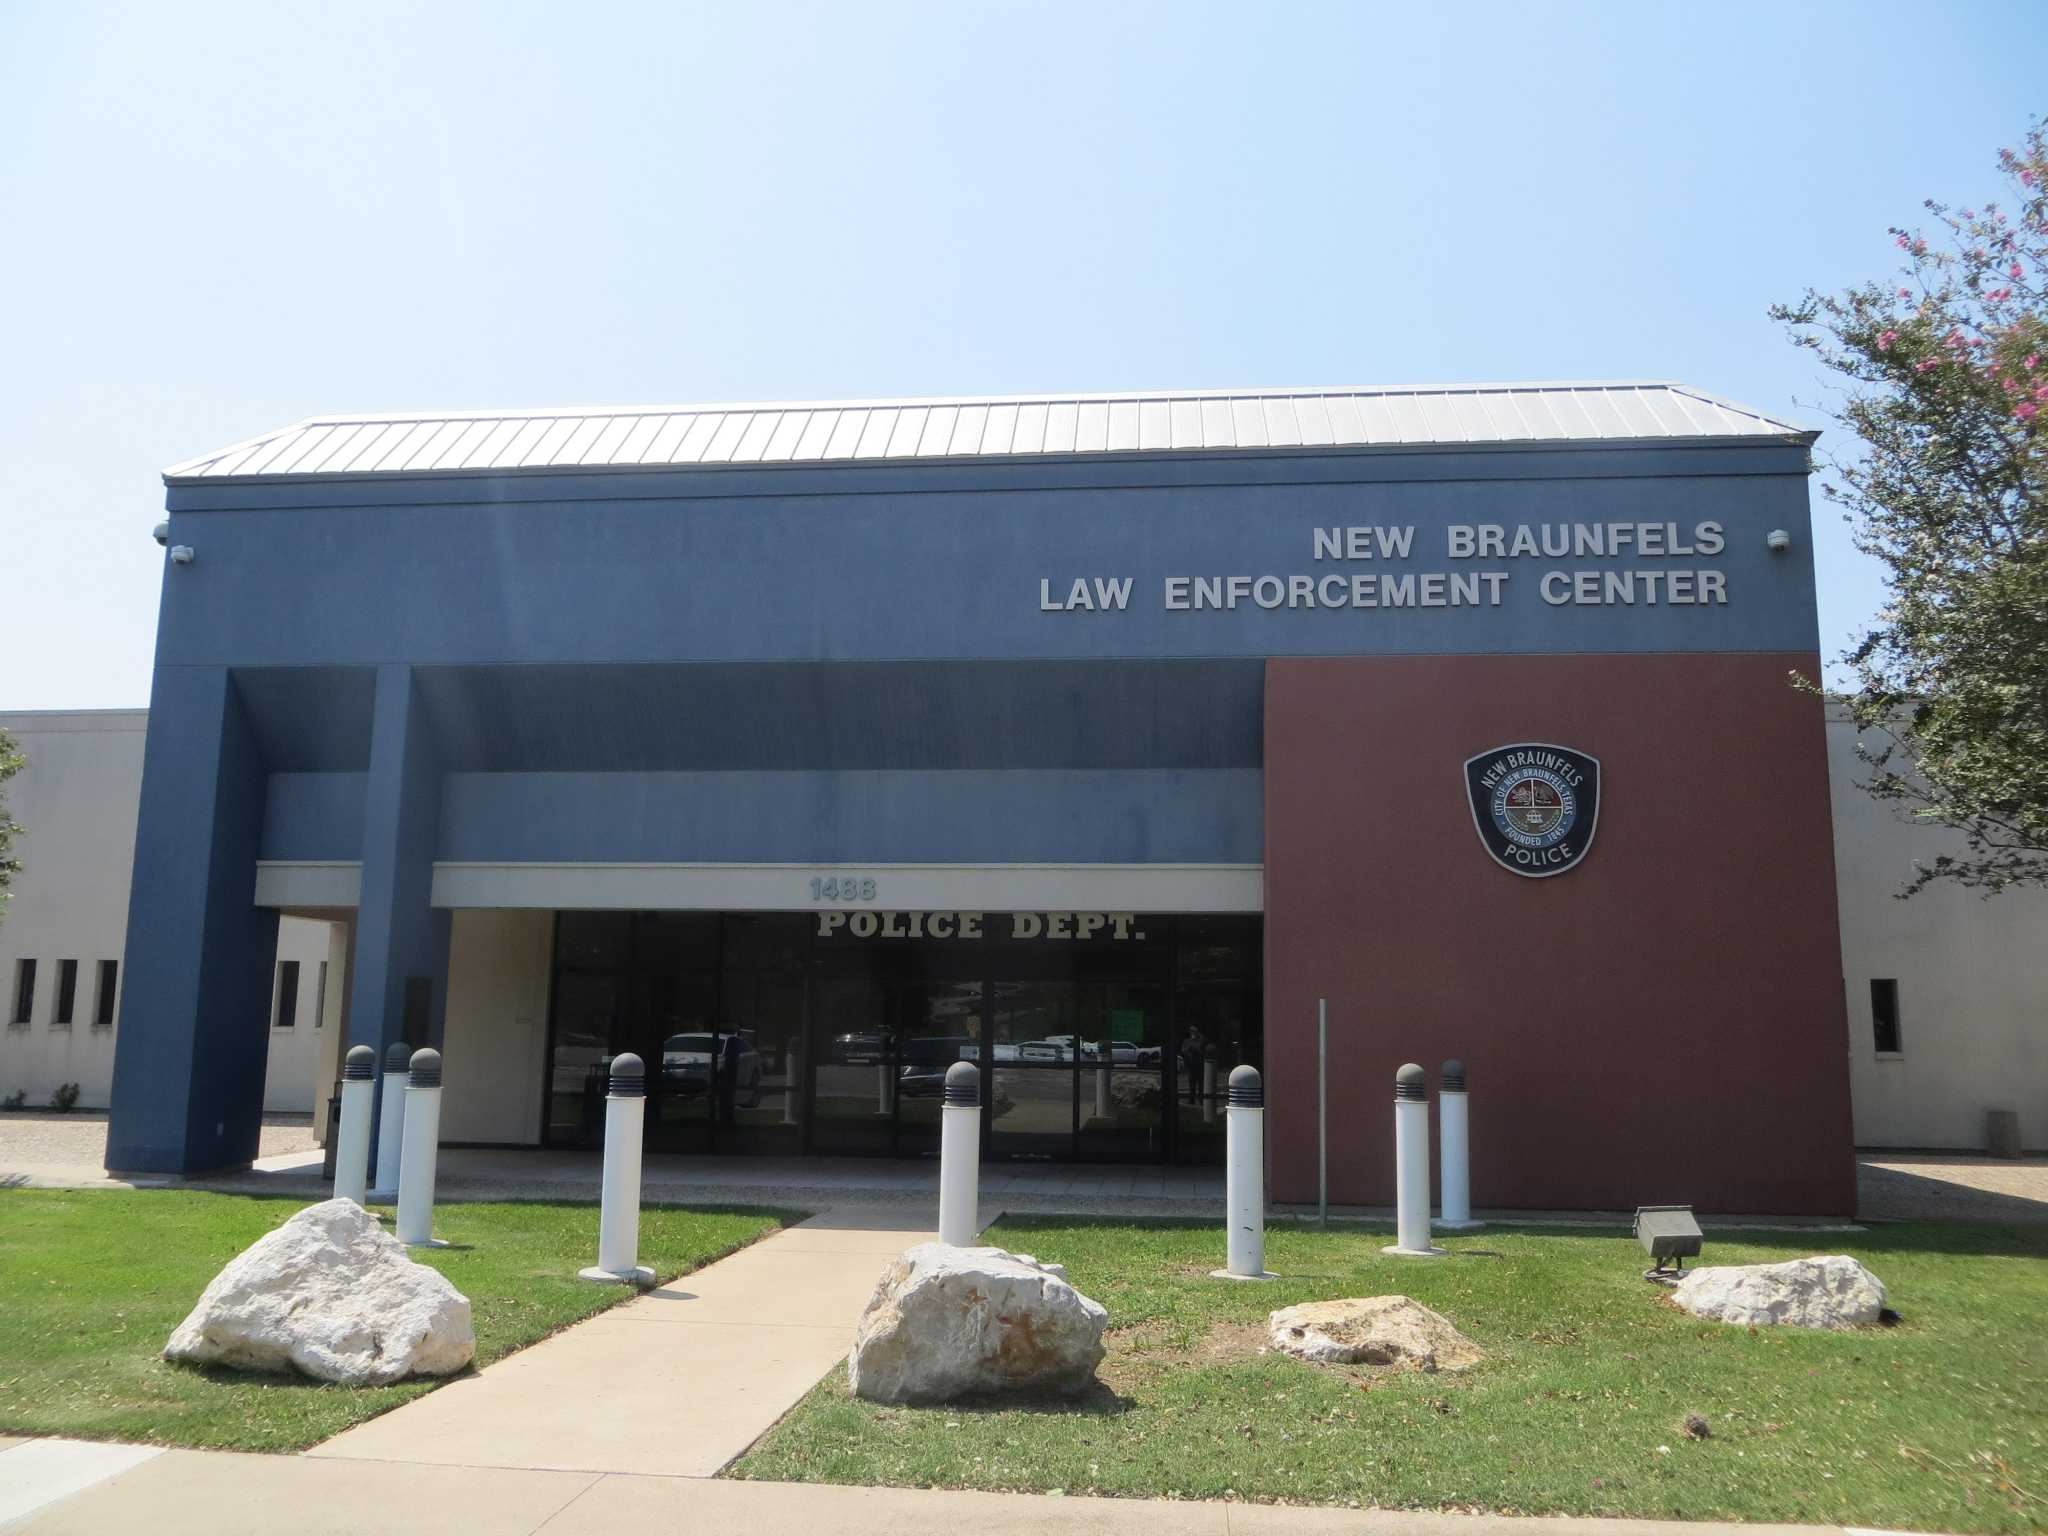 Roof leaks force New Braunfels police to relocate - Houston